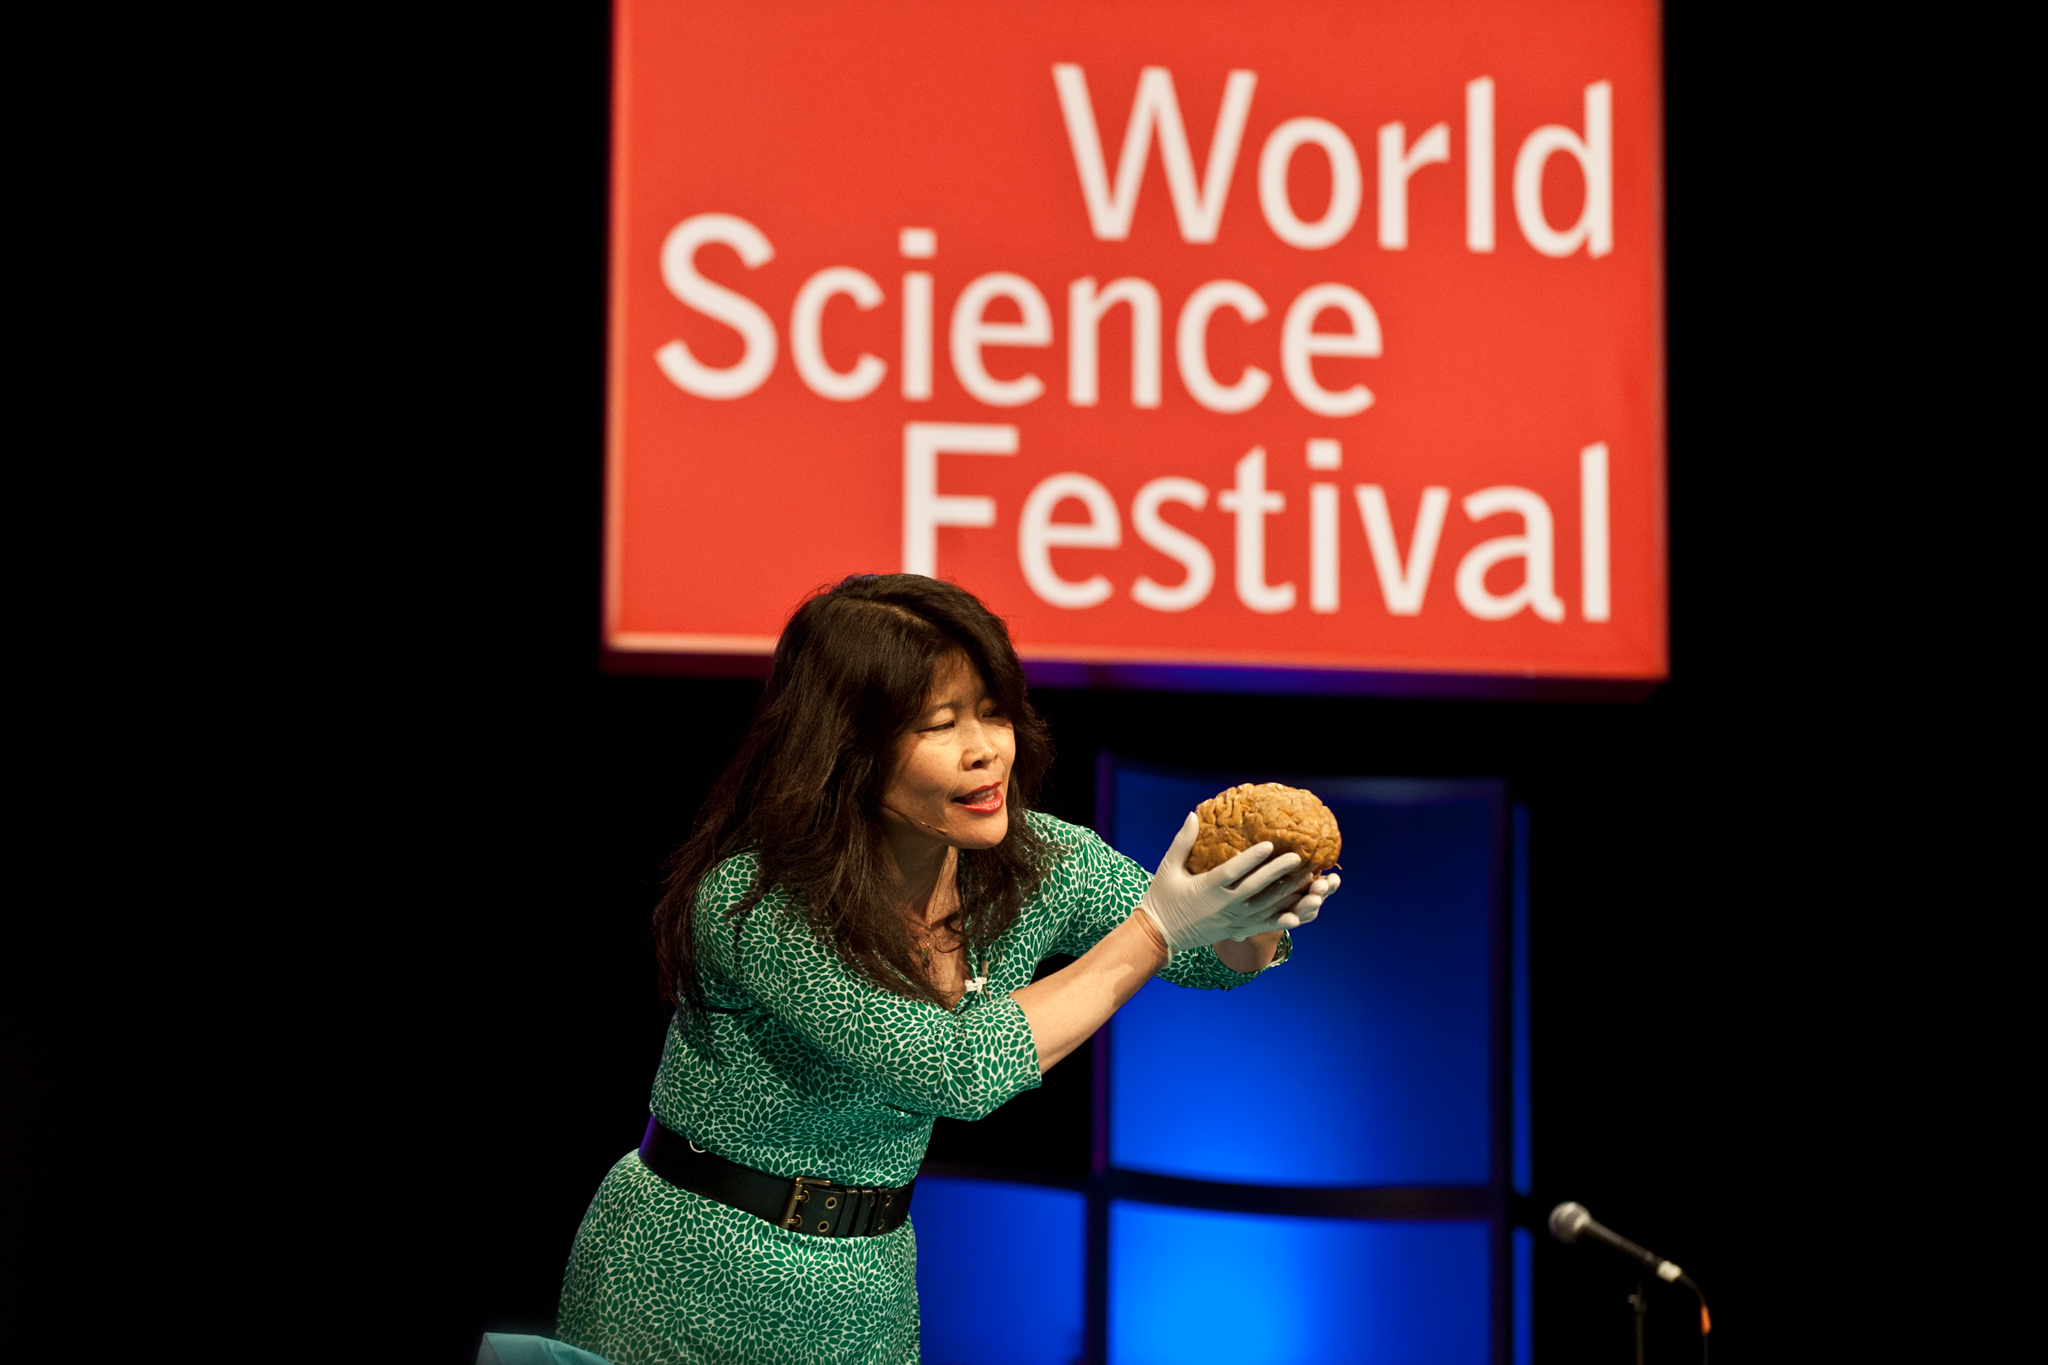 World Science Festival